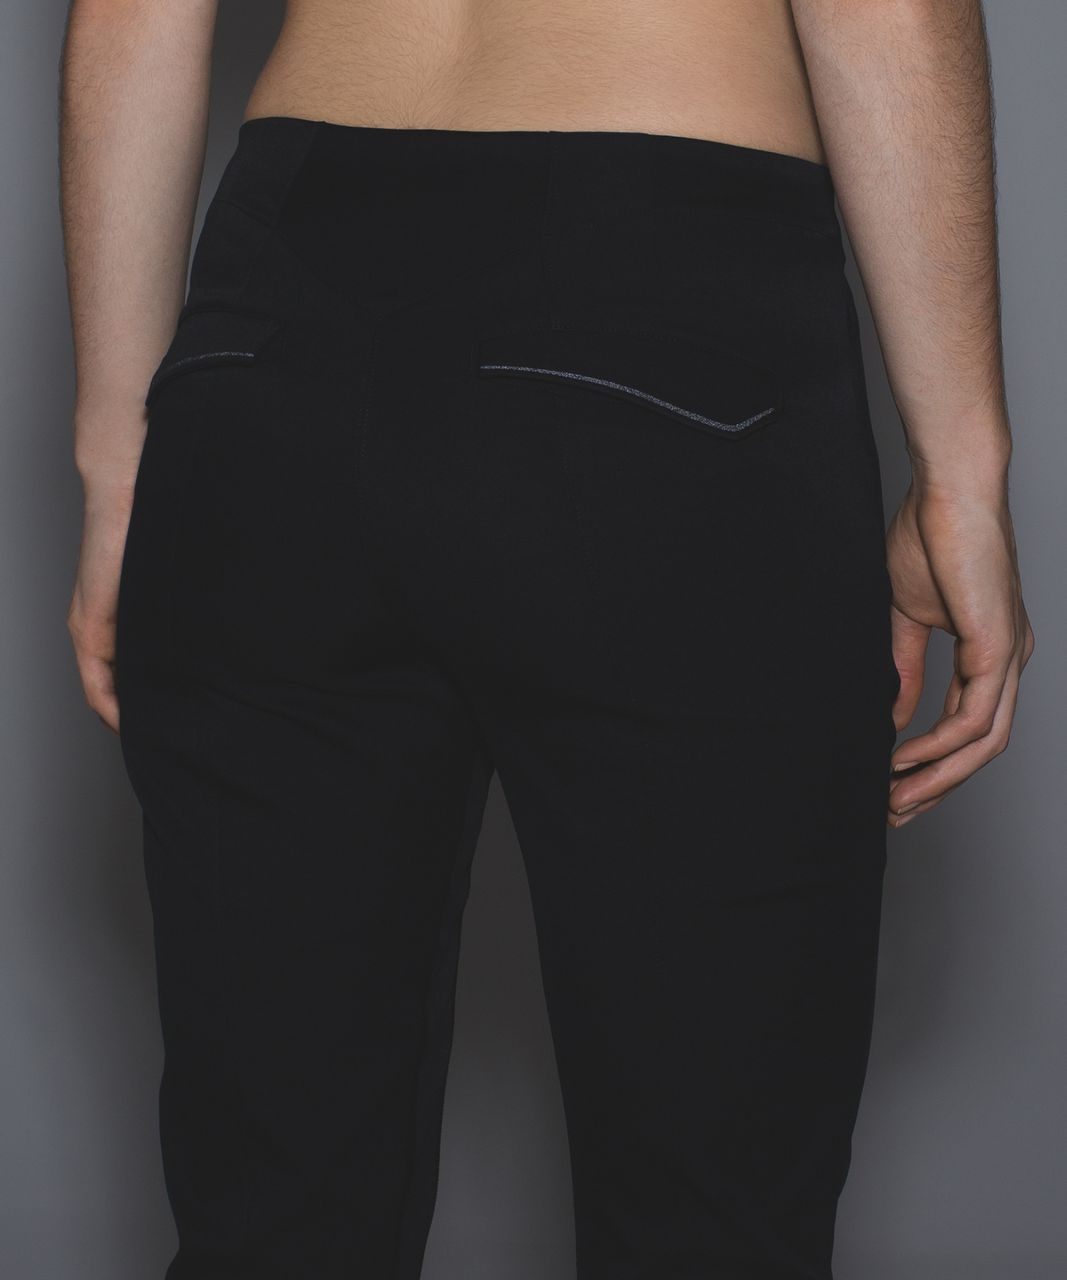 Lululemon &go Take-Off Flare (Tall) - Black